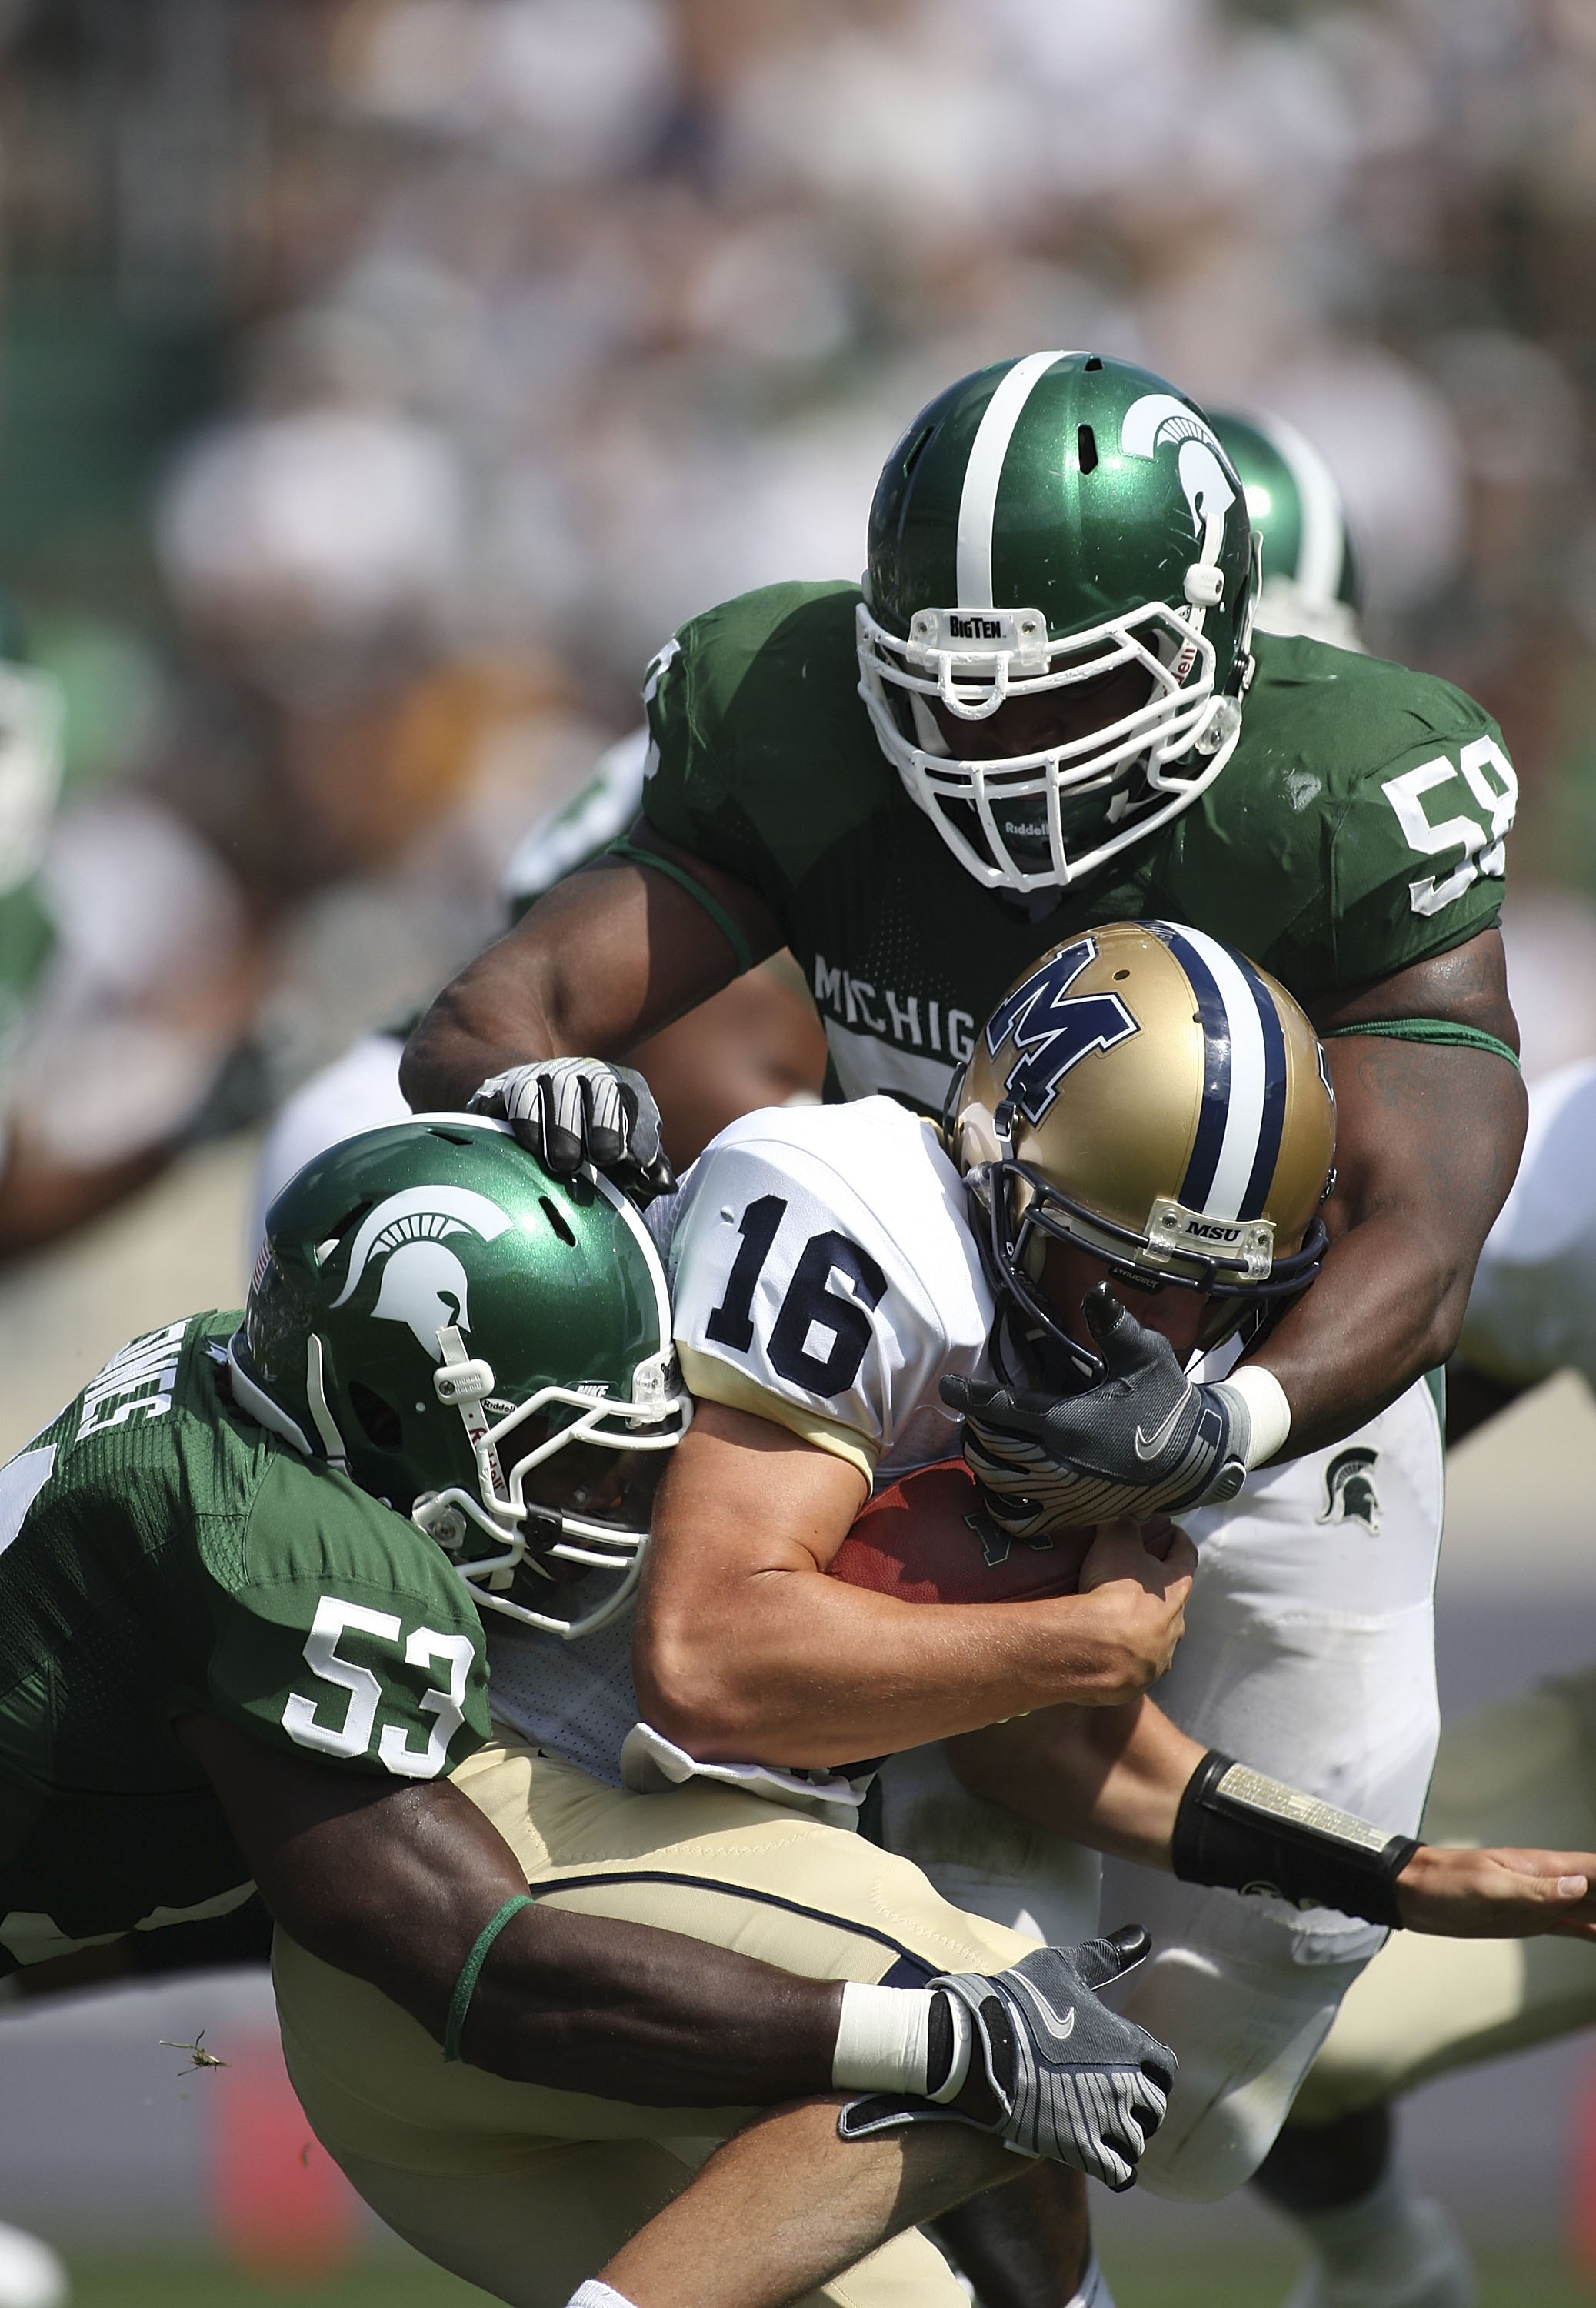 EAST LANSING, MI - SEPTEMBER 05: Tackle D.J. Young #59 and Linebacker Greg Jones #53 of the Michigan State Spartans sack Quarterback Mark Iddins #16 of Montana State during the second quarter on September 5, 2009 at Spartan Stadium in East Lansing, Michig